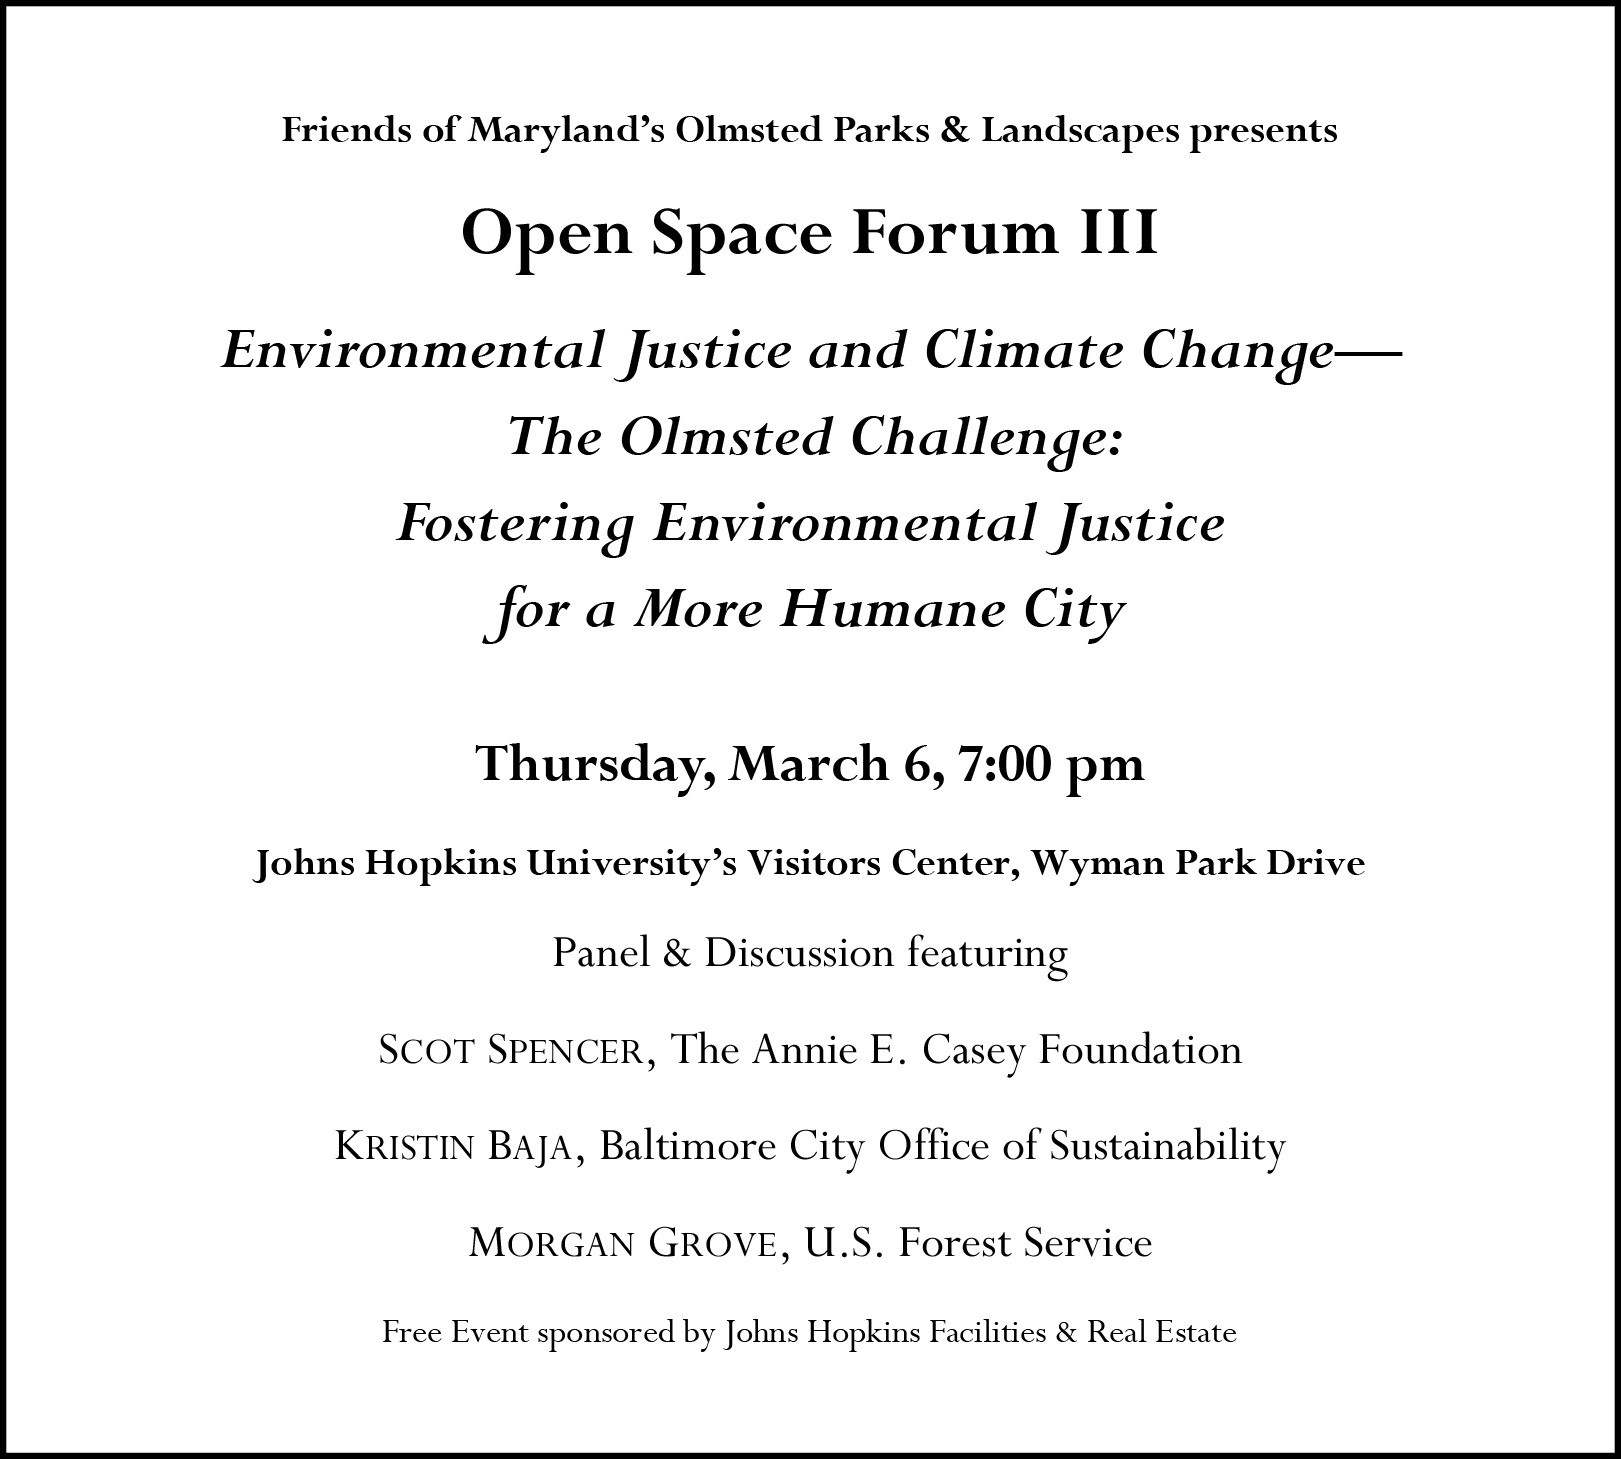 Open Space Forum III announcement March 6, 2014